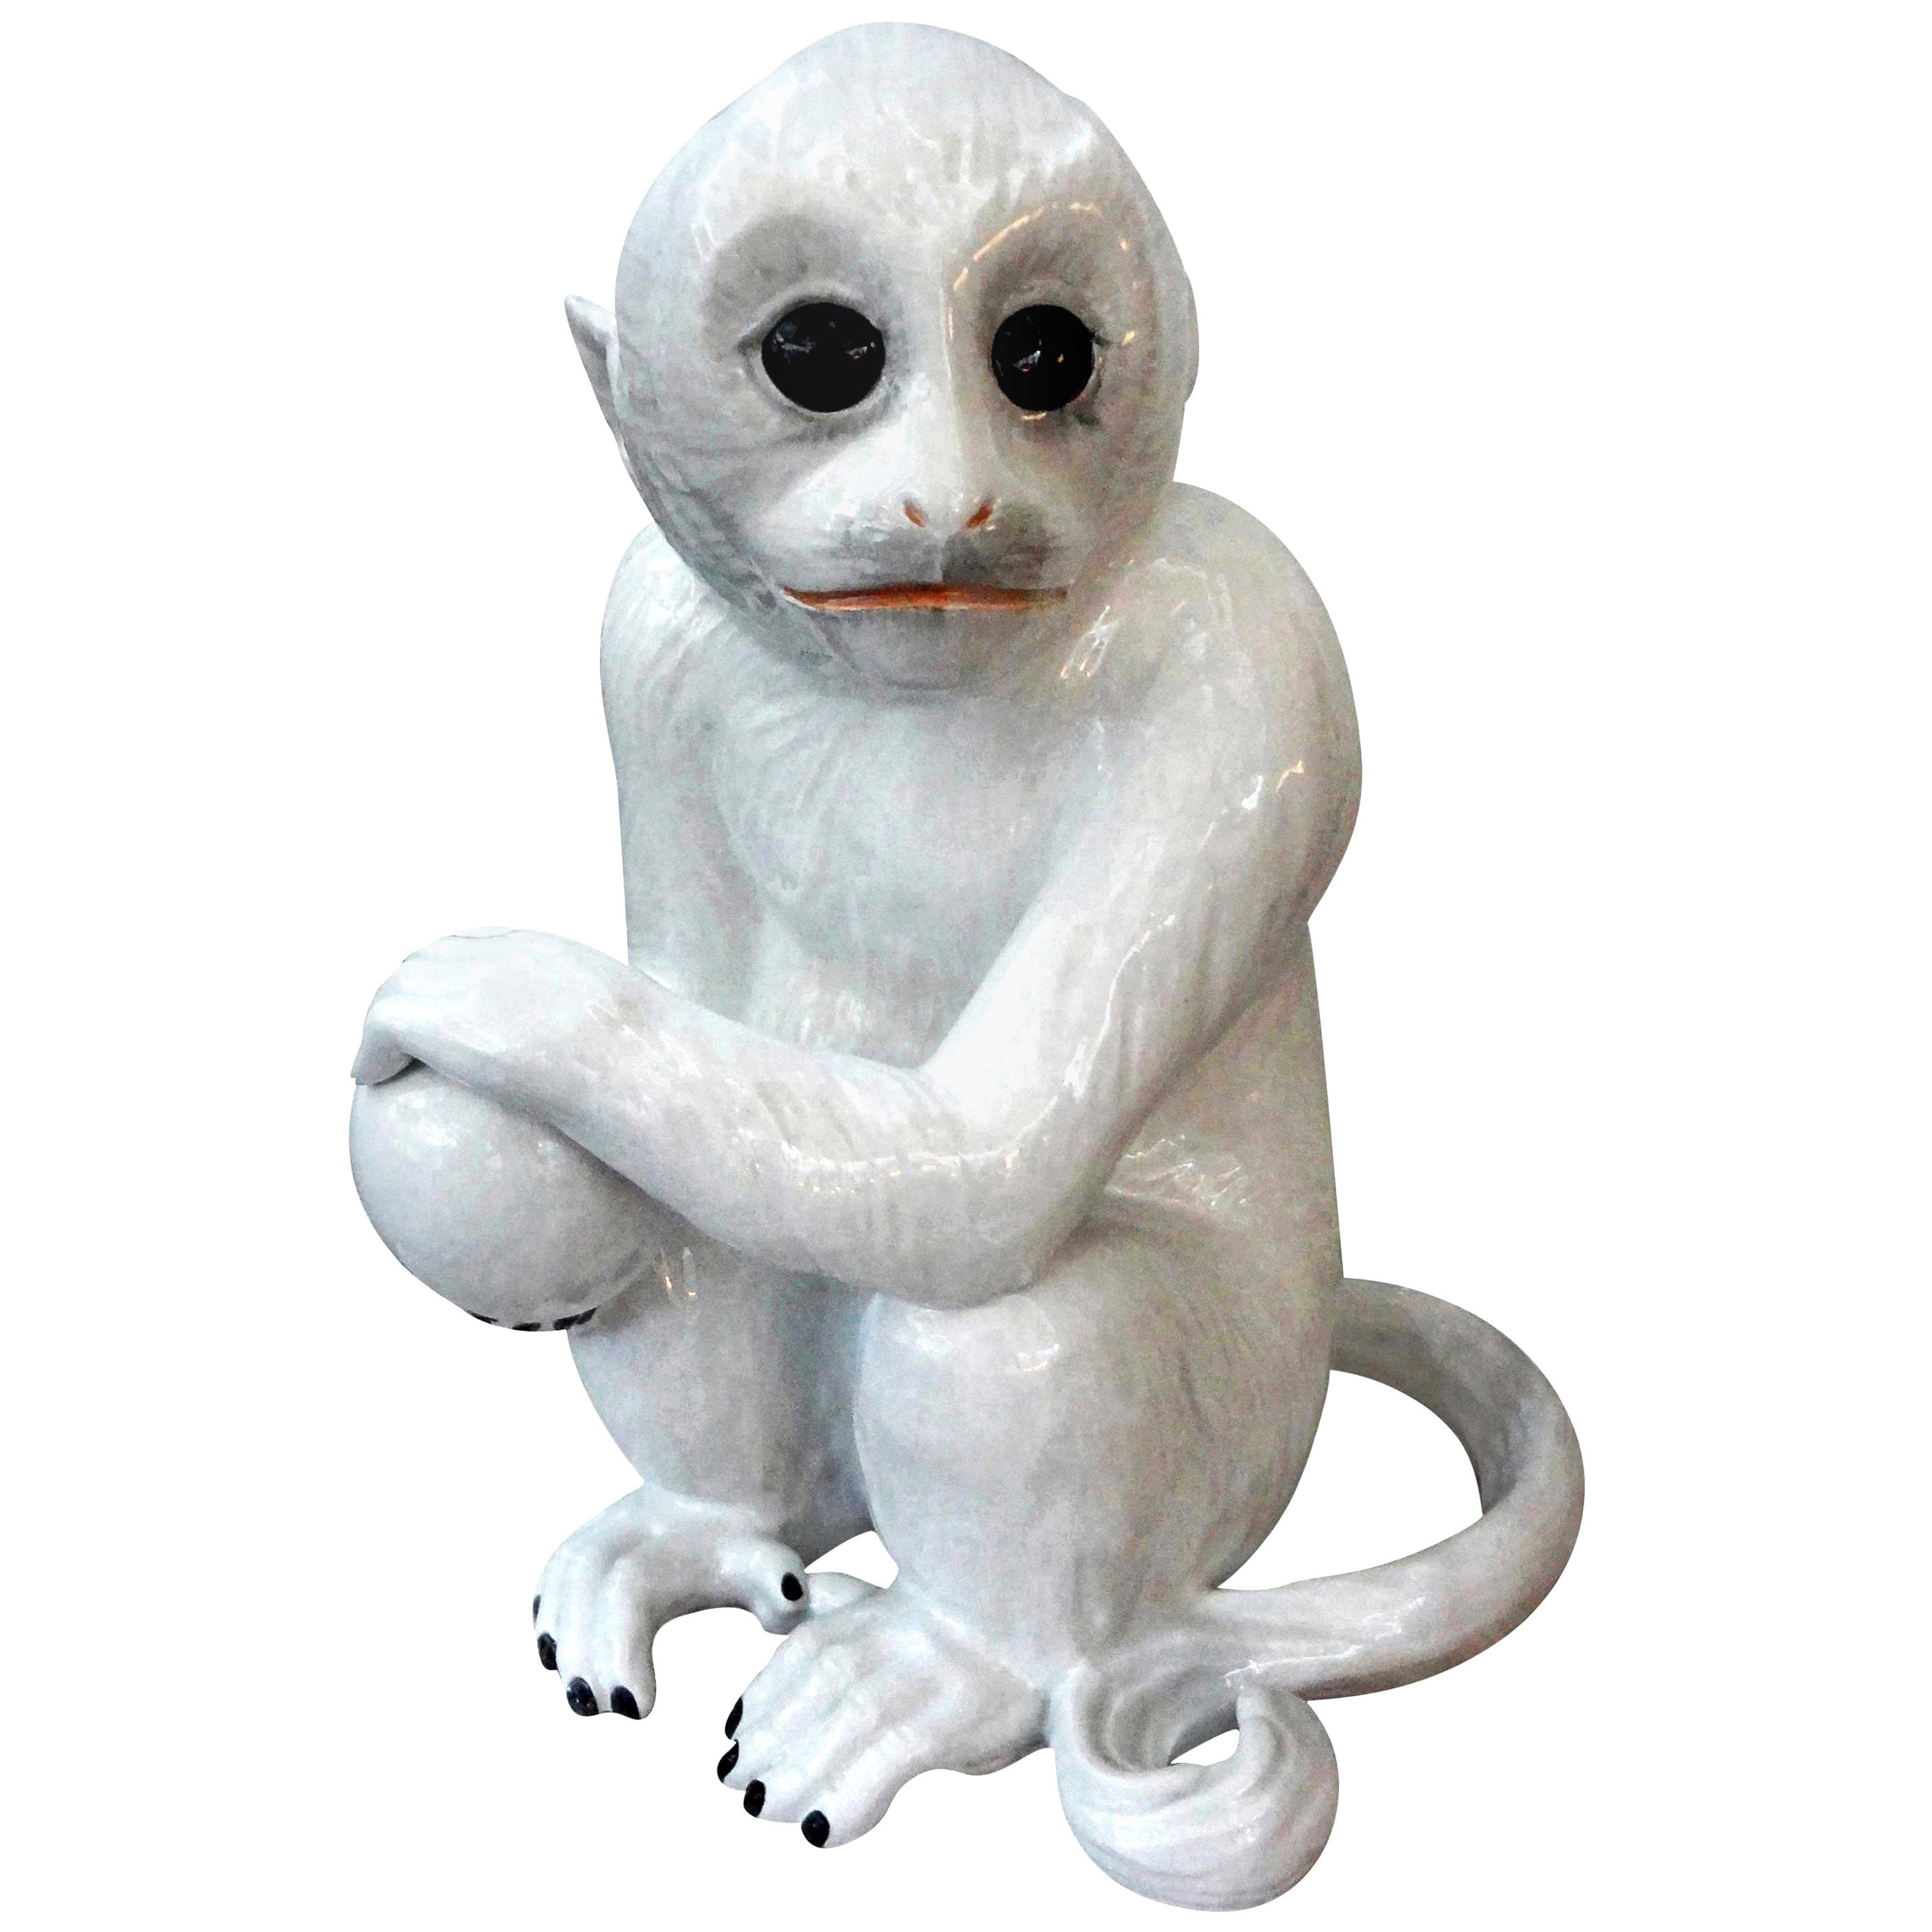 Vintage Italian Glazed Pottery Monkey Sculpture